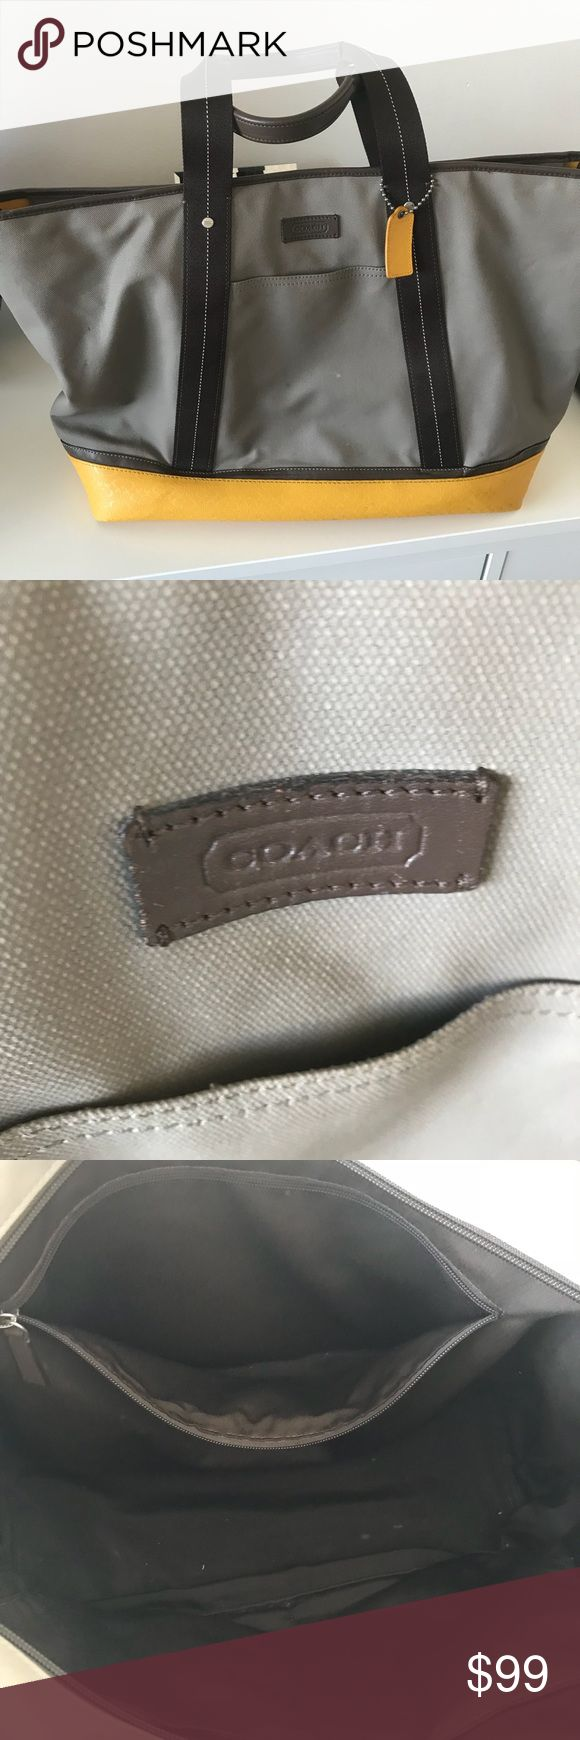 Coach Duffle Bag Very good condition Coach Bags Travel Bags